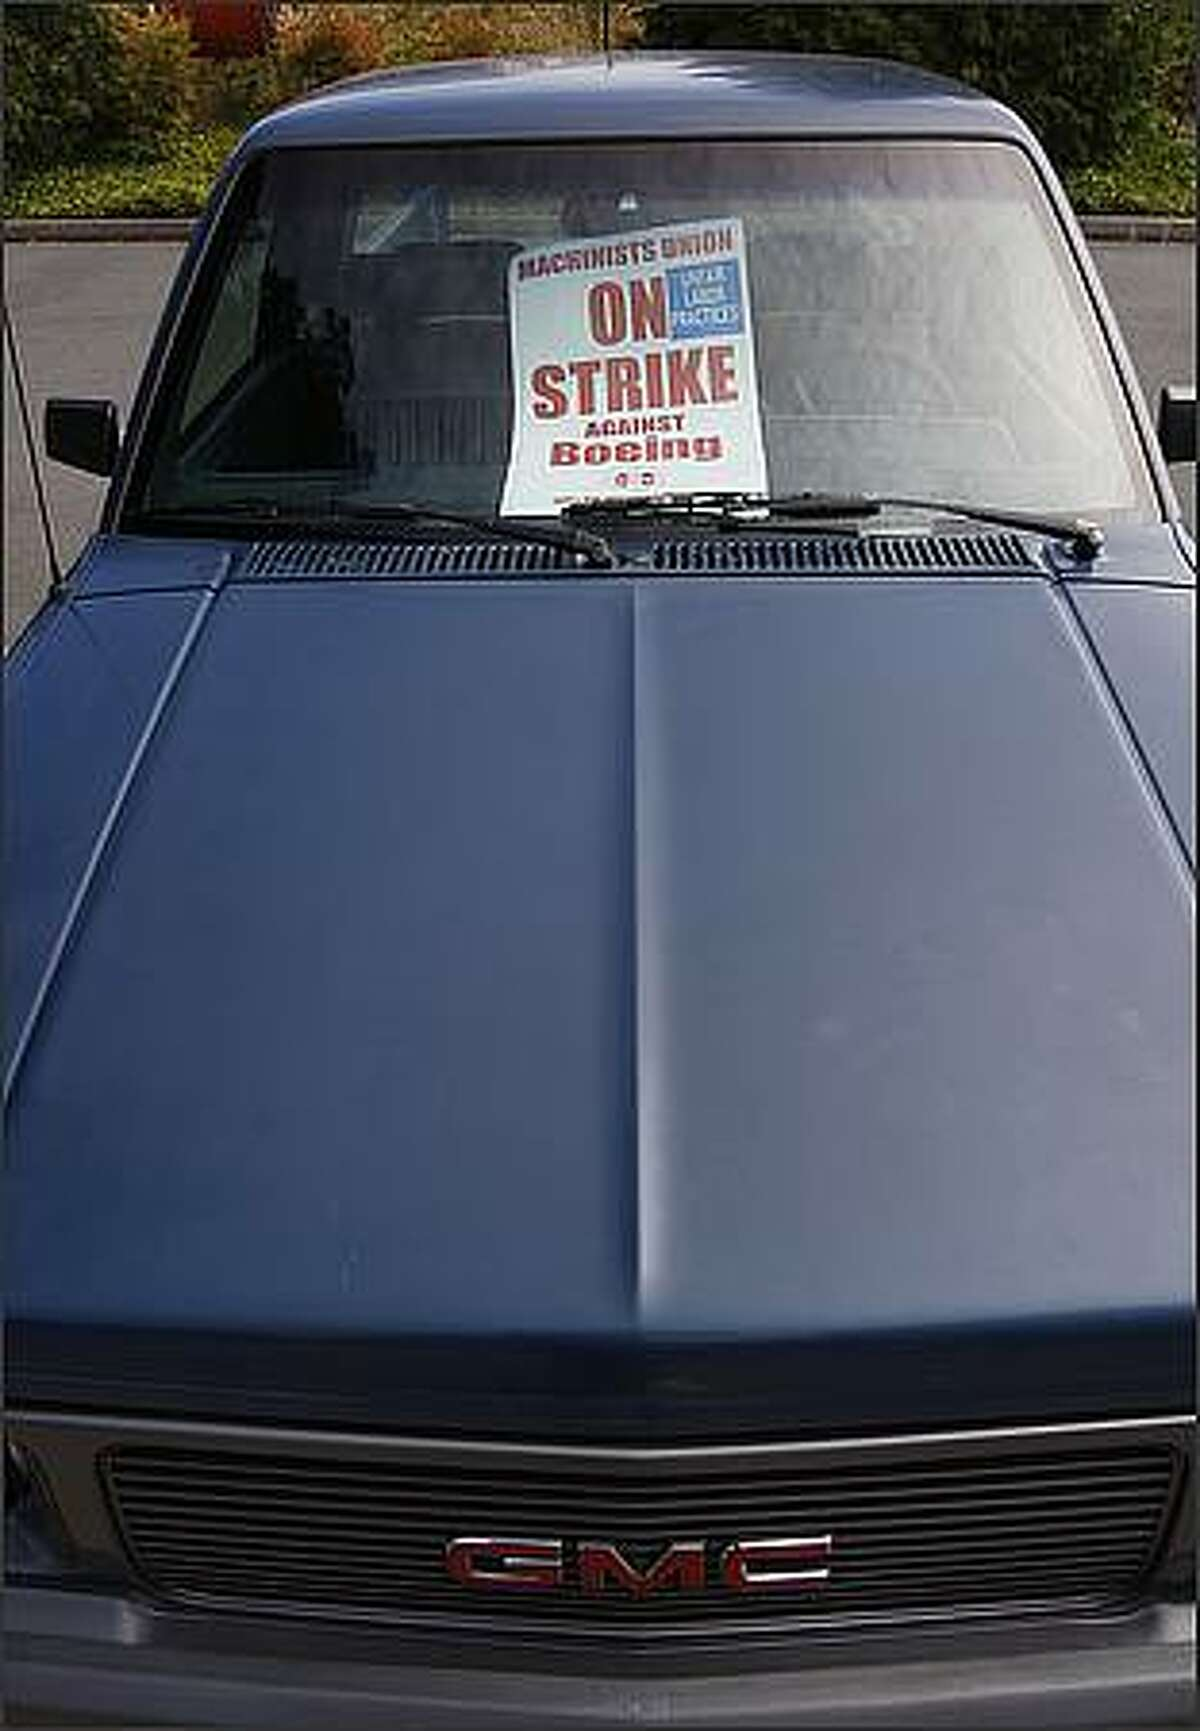 A strike sign is placed in the window of a Boeing employee's pickup truck in the parking lot of Union Hall District Lodge in Everett. (Brad Vest/Seattle P-I)